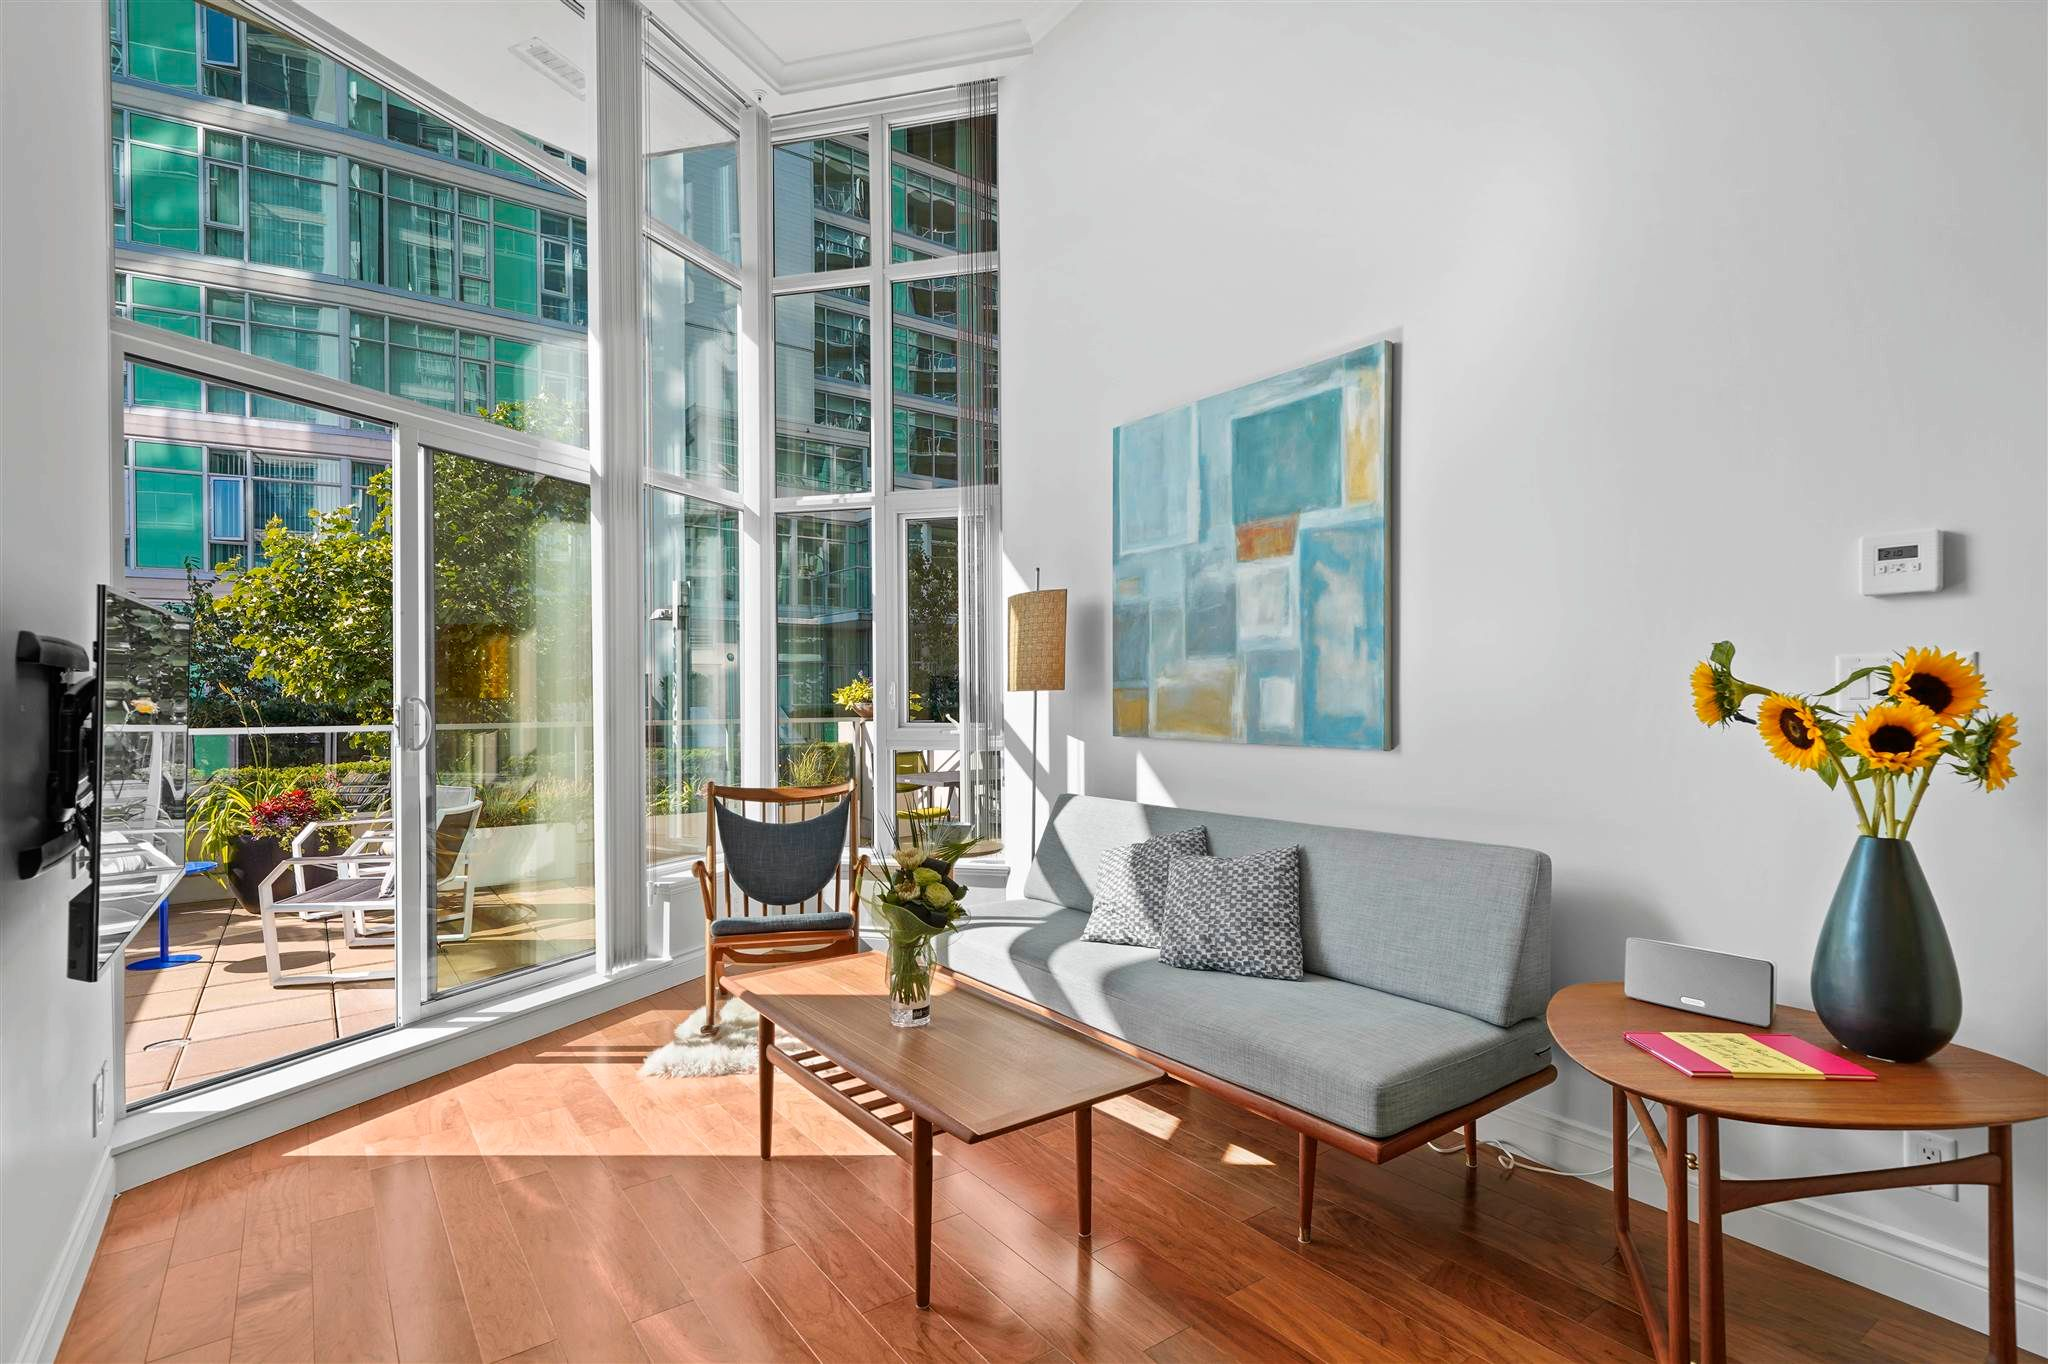 """Main Photo: 102 199 VICTORY SHIP Way in North Vancouver: Lower Lonsdale Condo for sale in """"The Trophy"""" : MLS®# R2607442"""